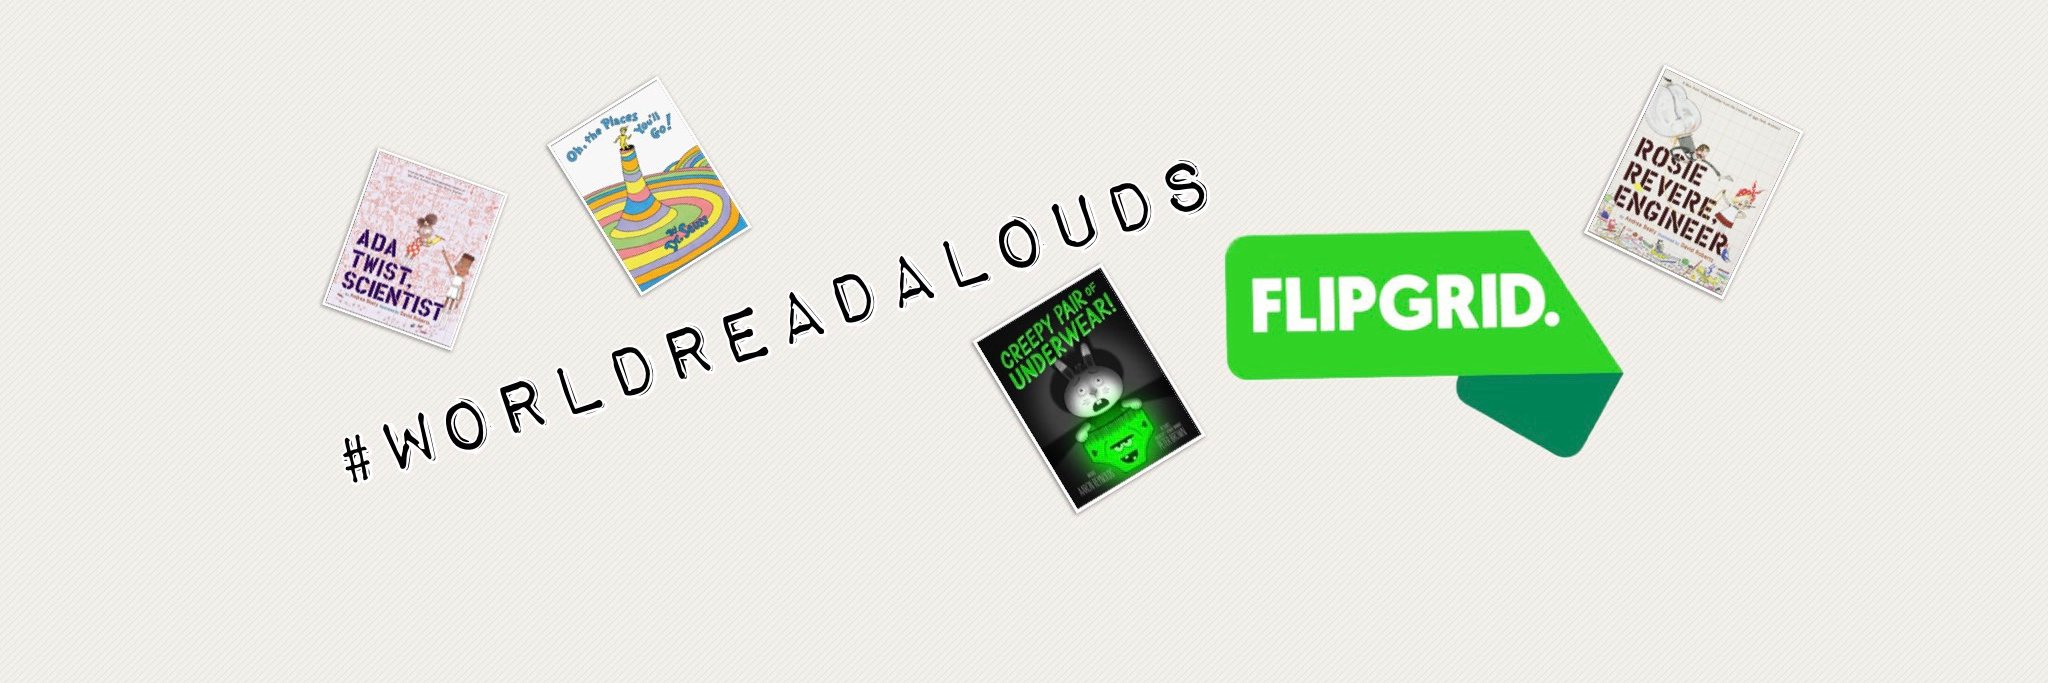 Currently/have been impacted by Coronavirus & distance learning?! Get your Ss @flipgrid'ing & having discussions w/… https://t.co/qaytveQM8e